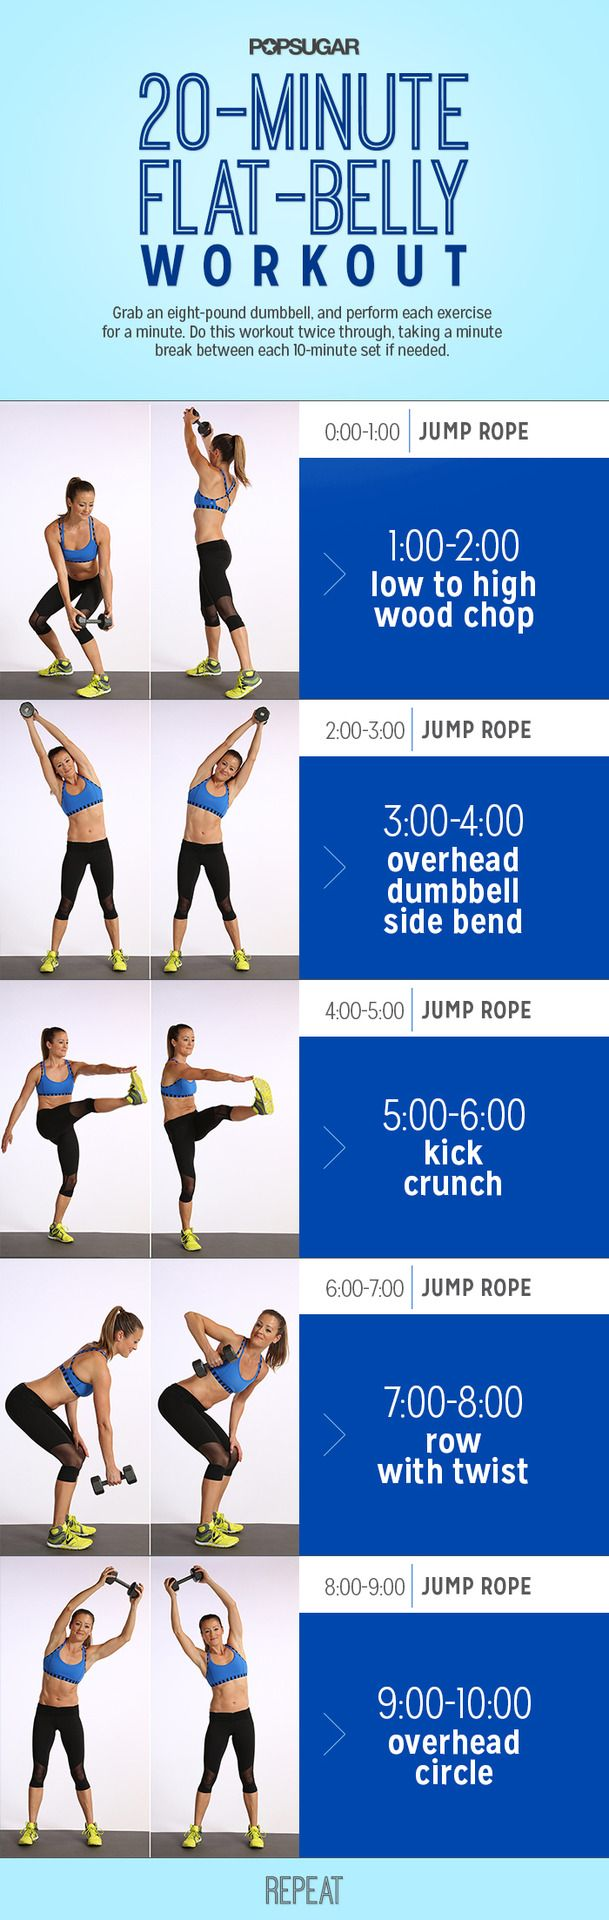 10 Days Flat Belly Workout